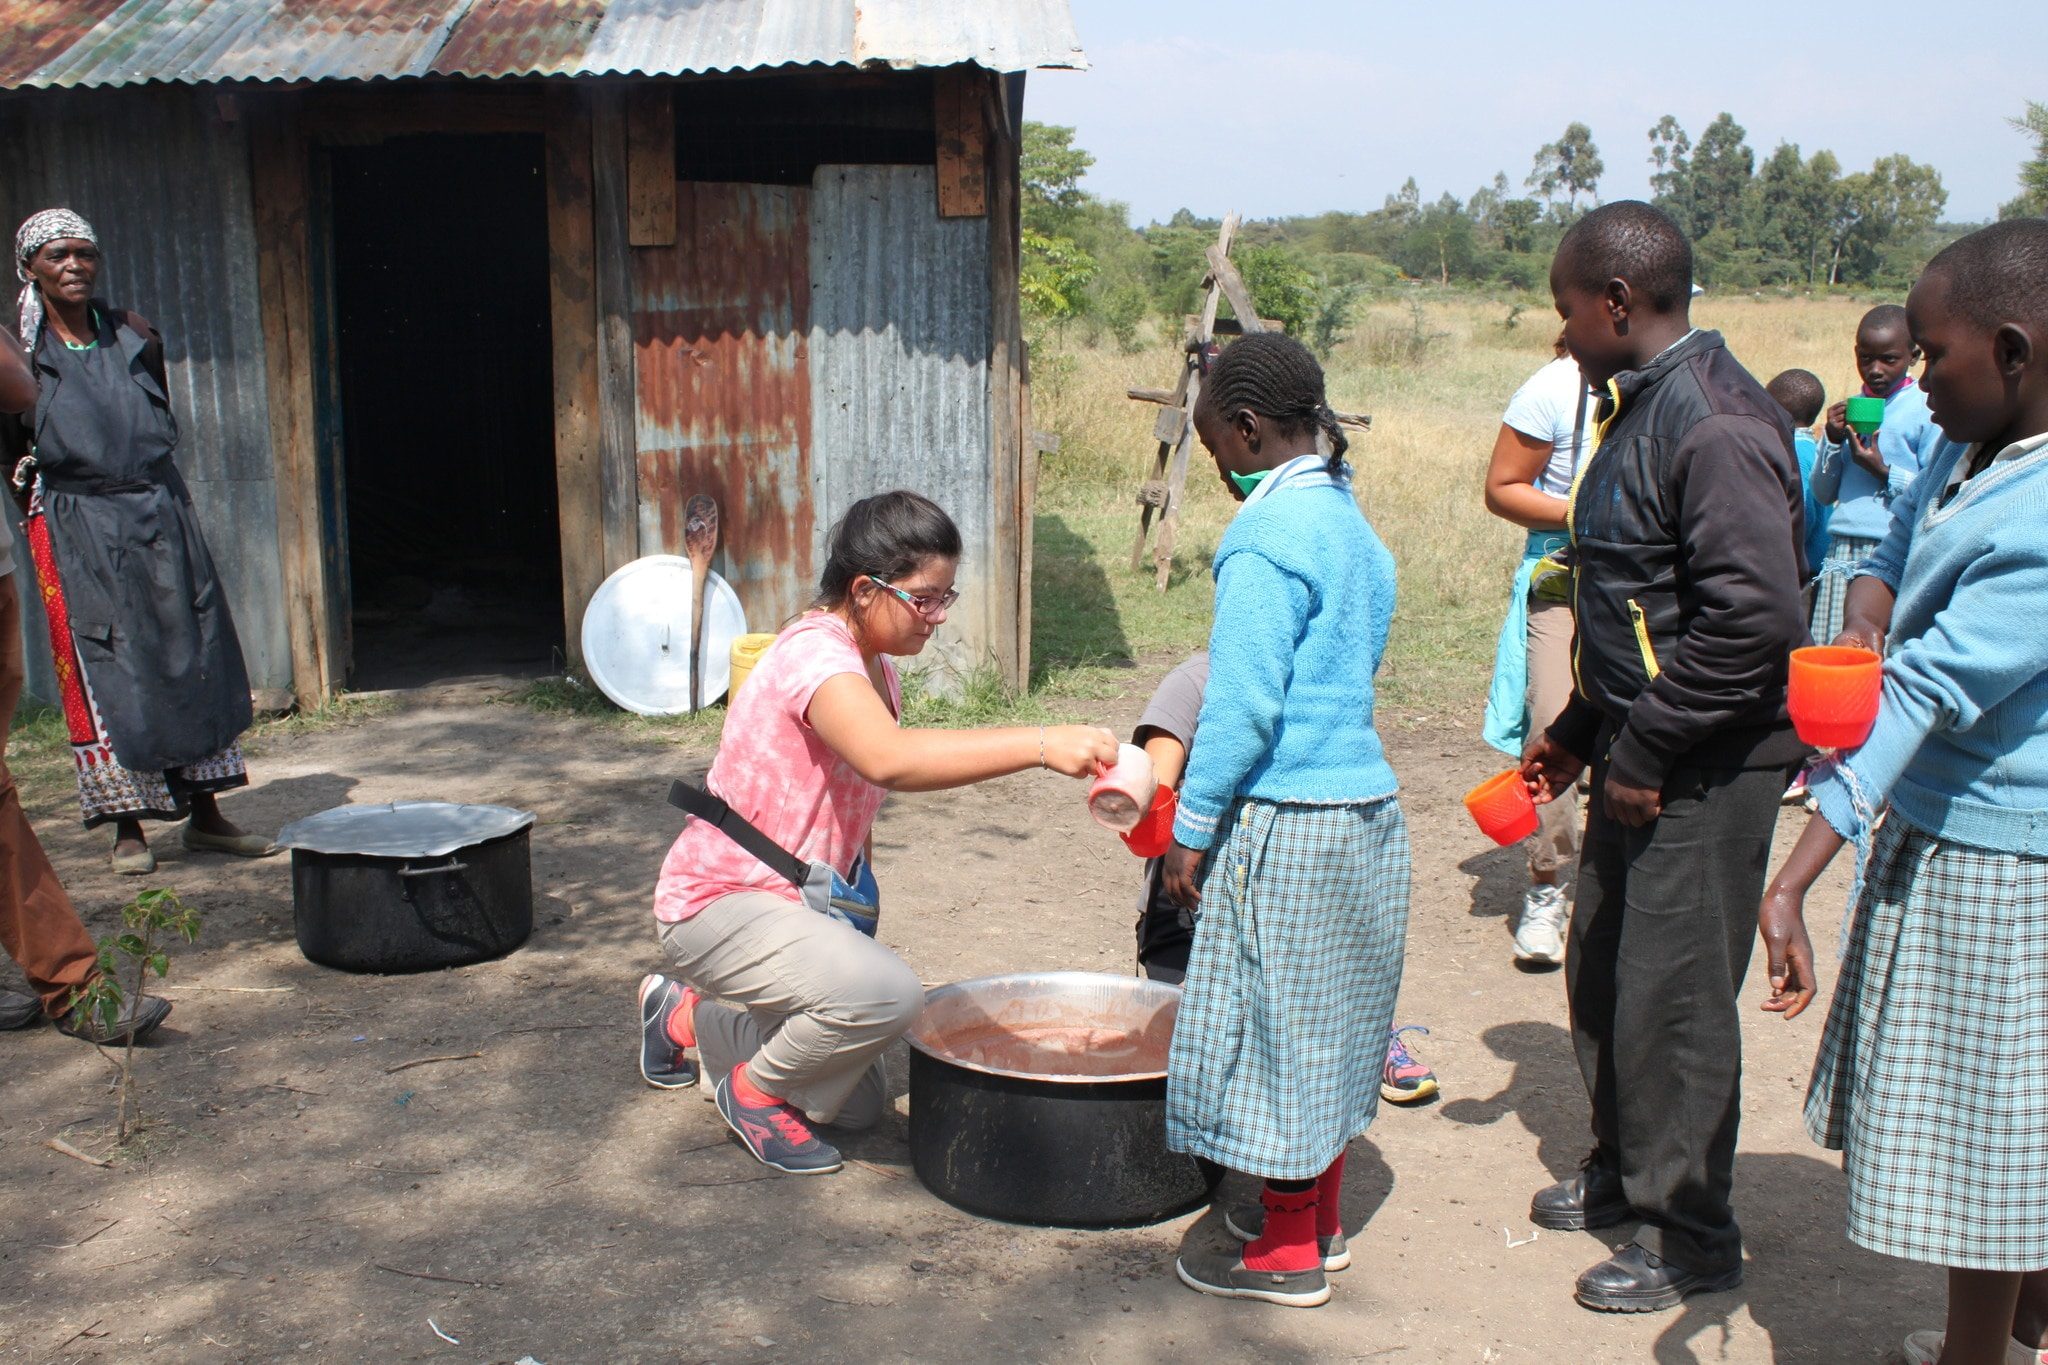 Mission  participants embrace the opportunity to serve porridge to the children.